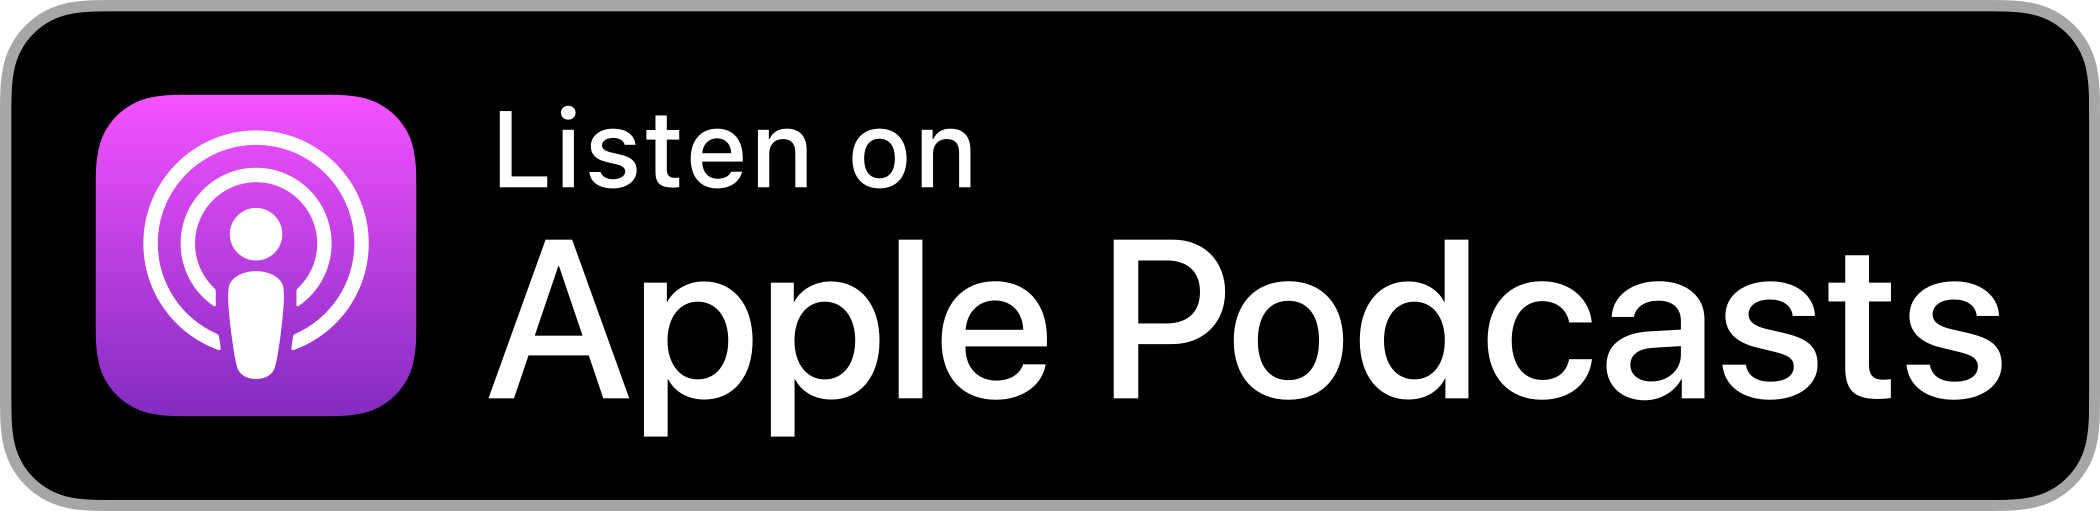 listen-on-apple-podcasts-1